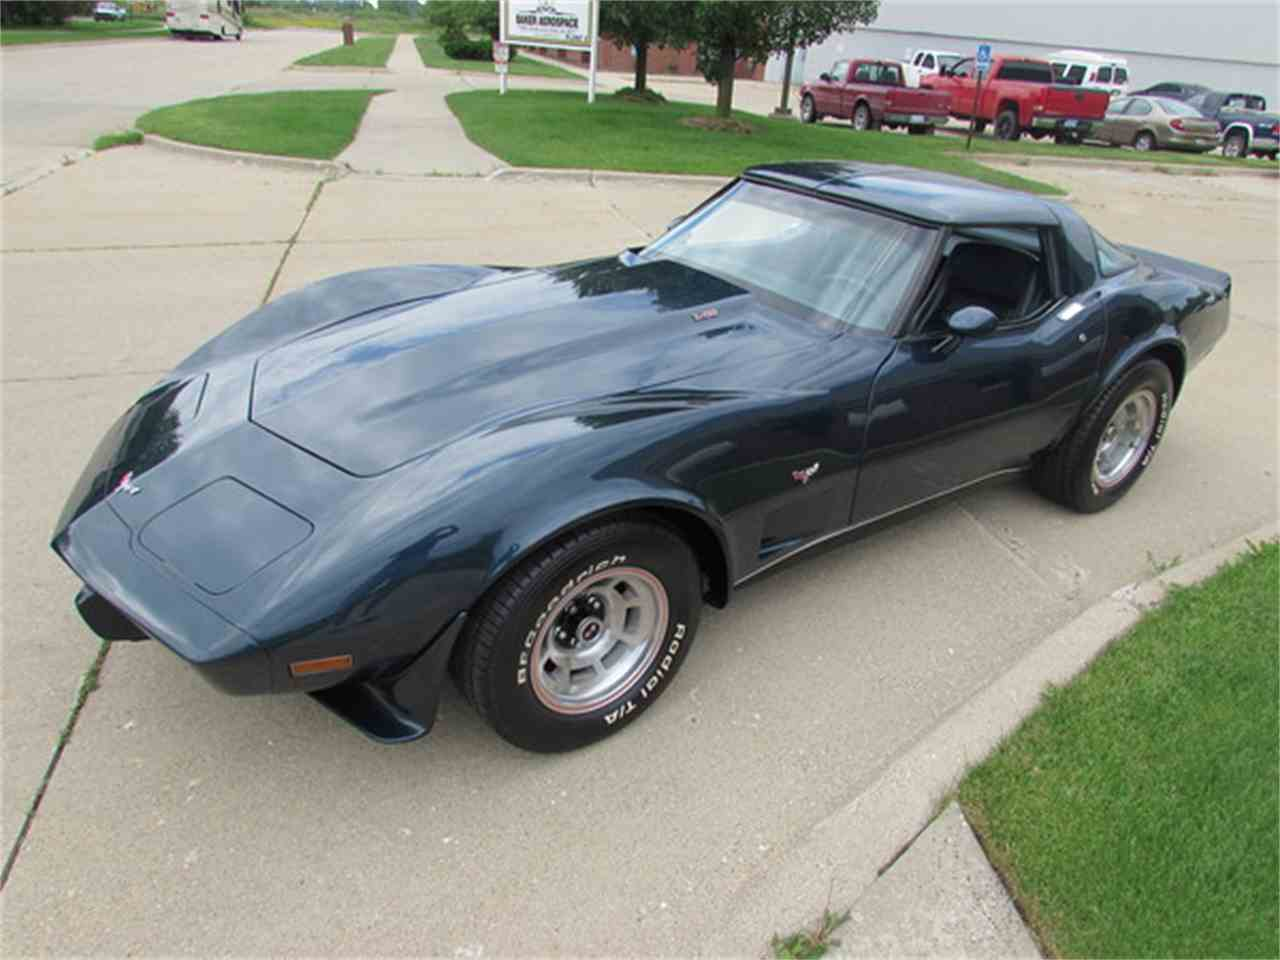 Large Picture of 1979 Chevrolet Corvette located in Florida - $17,900.00 - J2IA